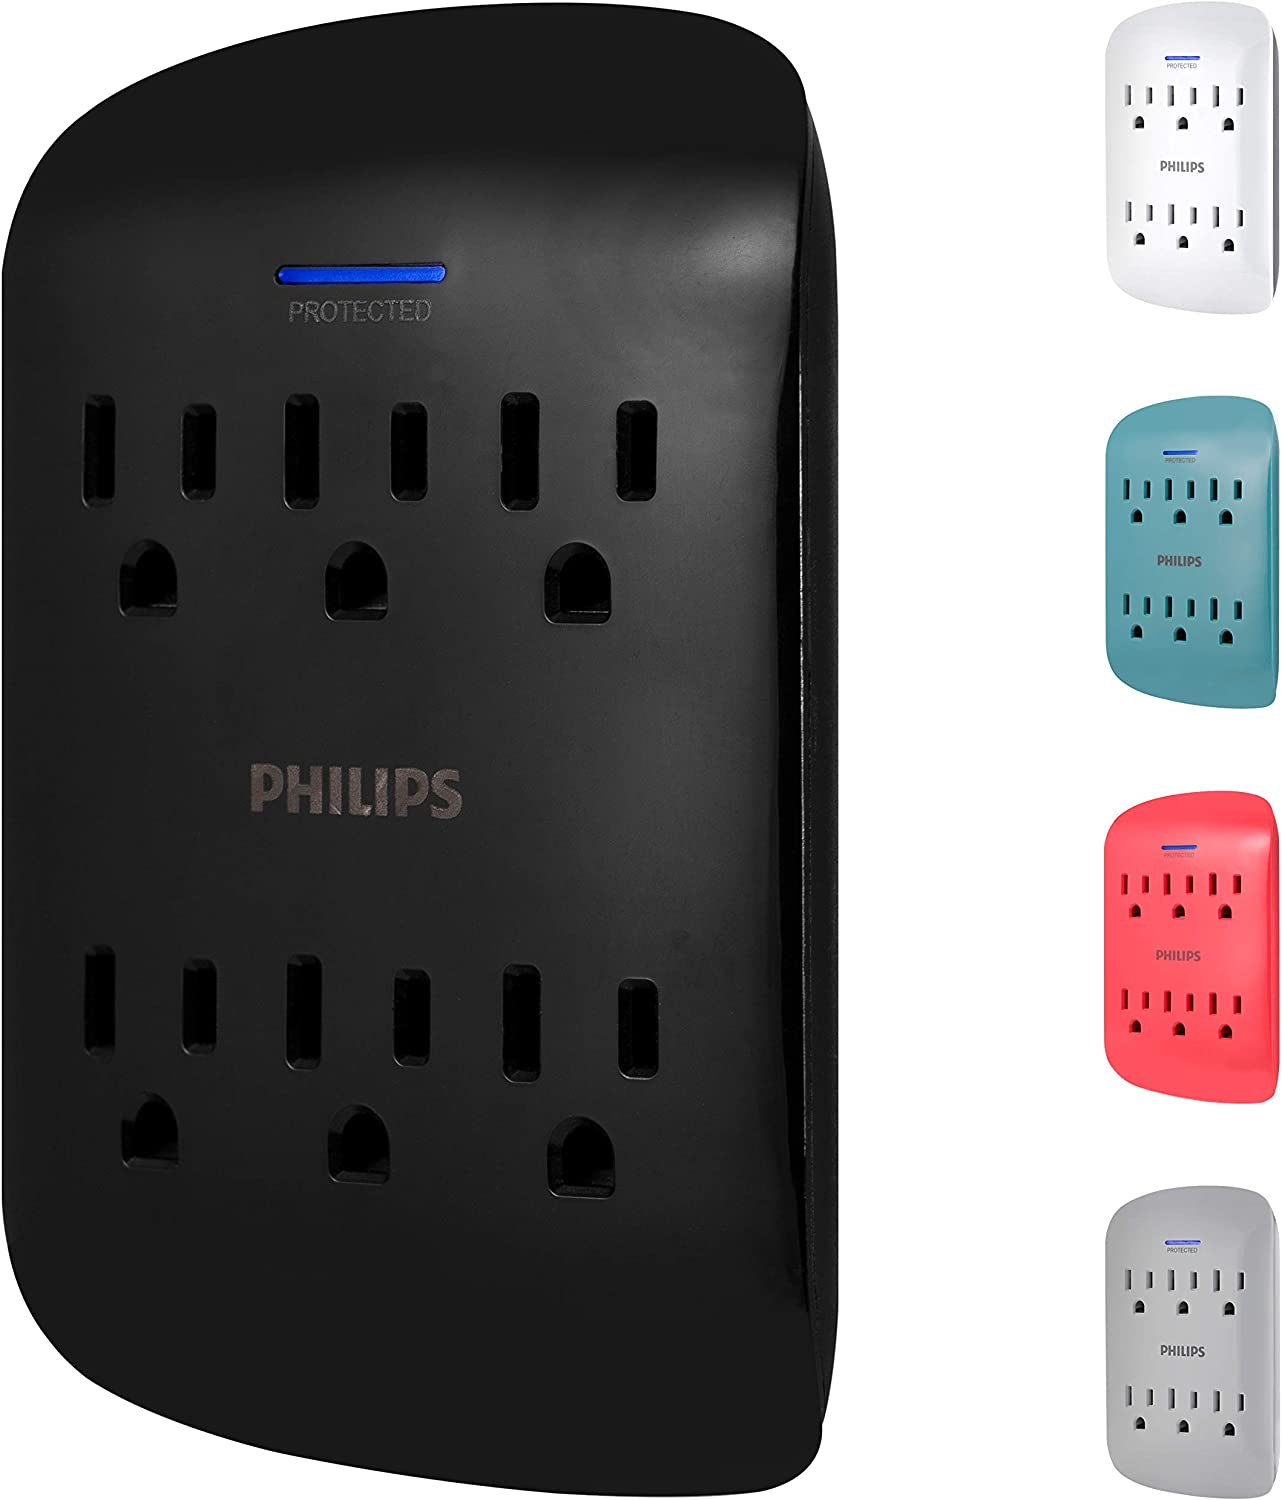 PHILIPS 6-Outlet Surge Protector Tap, 900 Joules, 3-Prong, Space Saving Design, Protection Indicator LED Light, Black, SPP3461BC/37